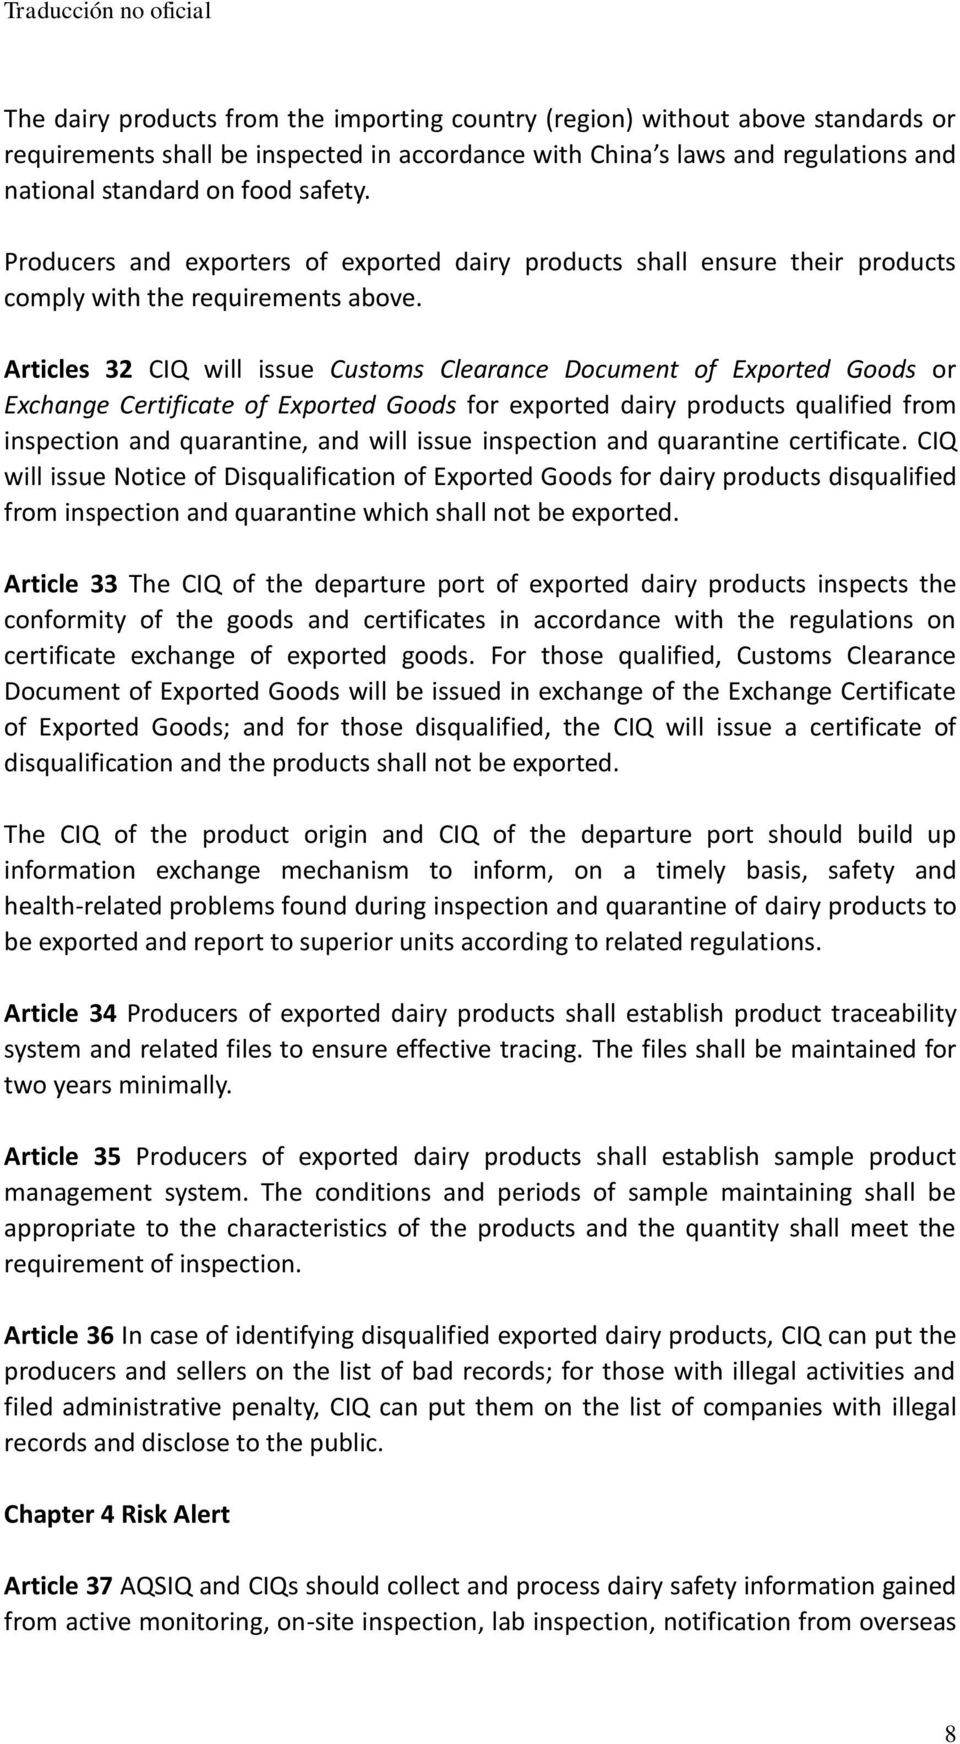 Articles 32 CIQ will issue Customs Clearance Document of Exported Goods or Exchange Certificate of Exported Goods for exported dairy products qualified from inspection and quarantine, and will issue